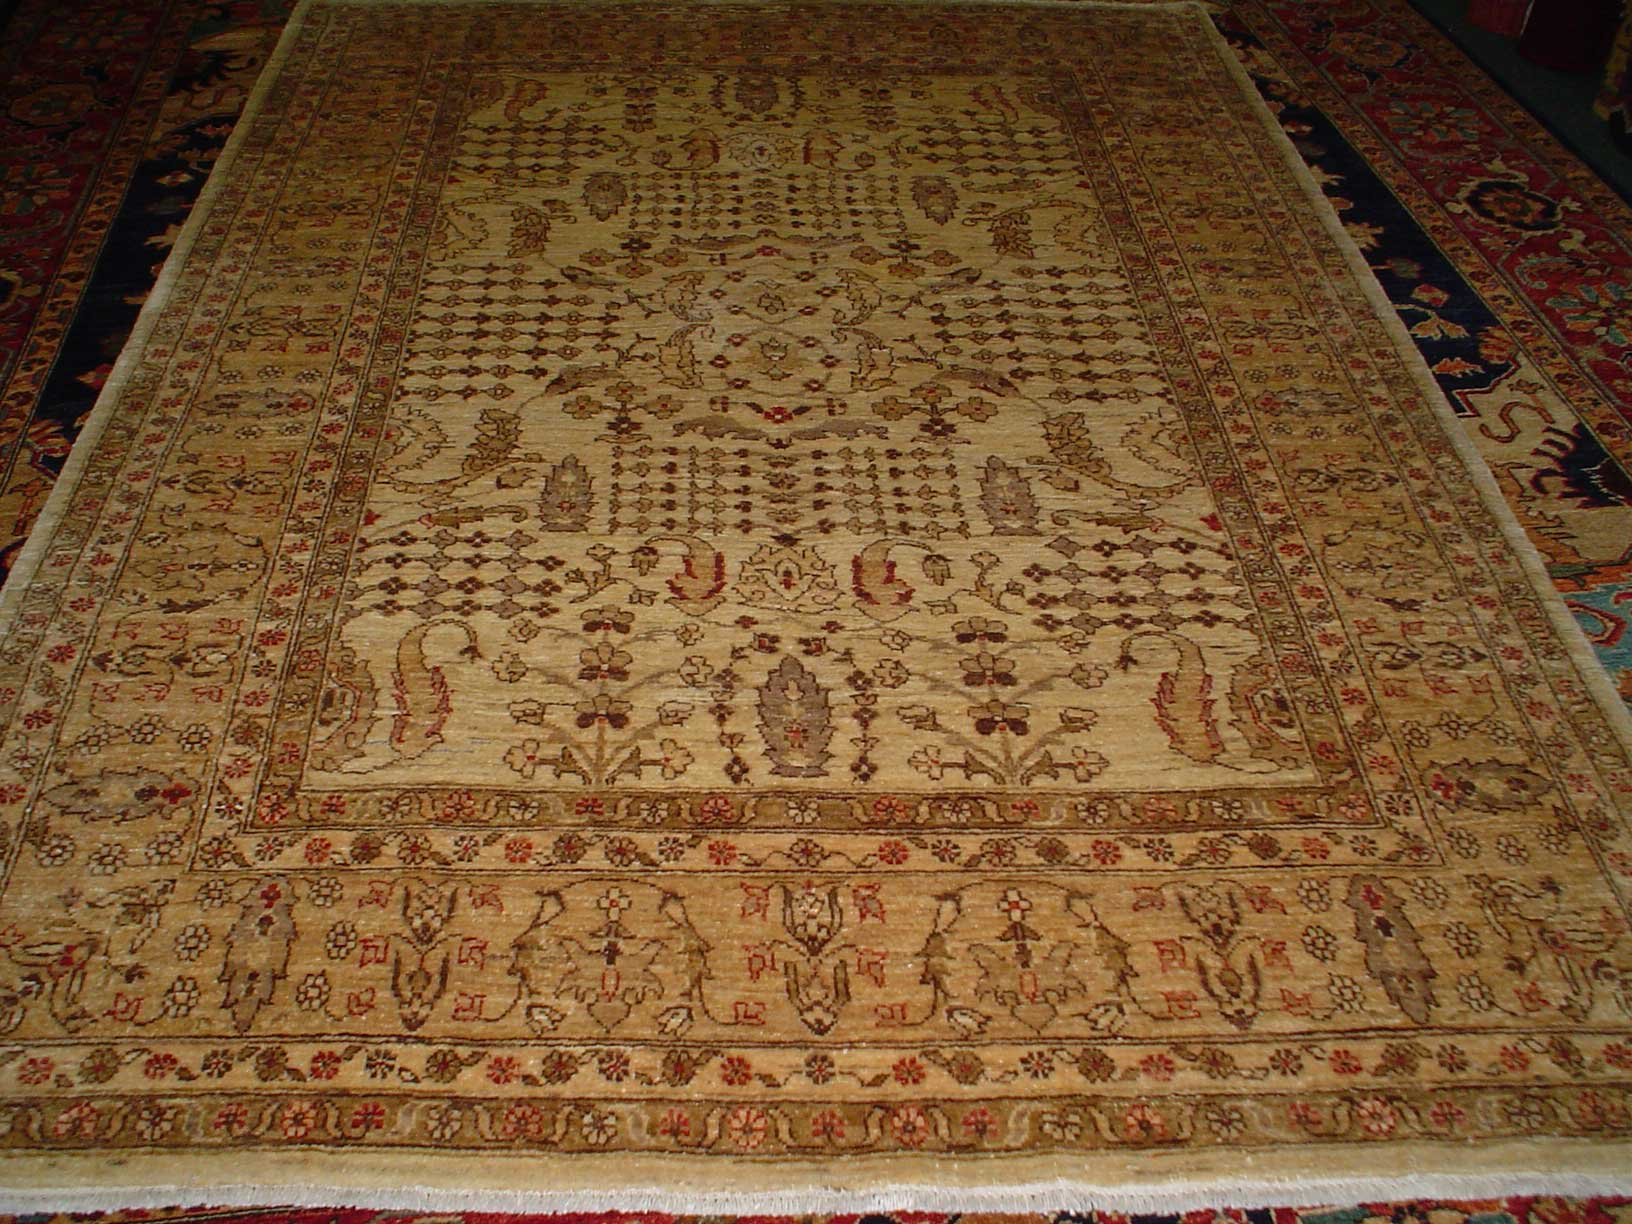 6 x 8 Ivory, beige overall floral rug with detailed design. Sold. New rug, antique design, woven in Afghanistan. Lovely rug!